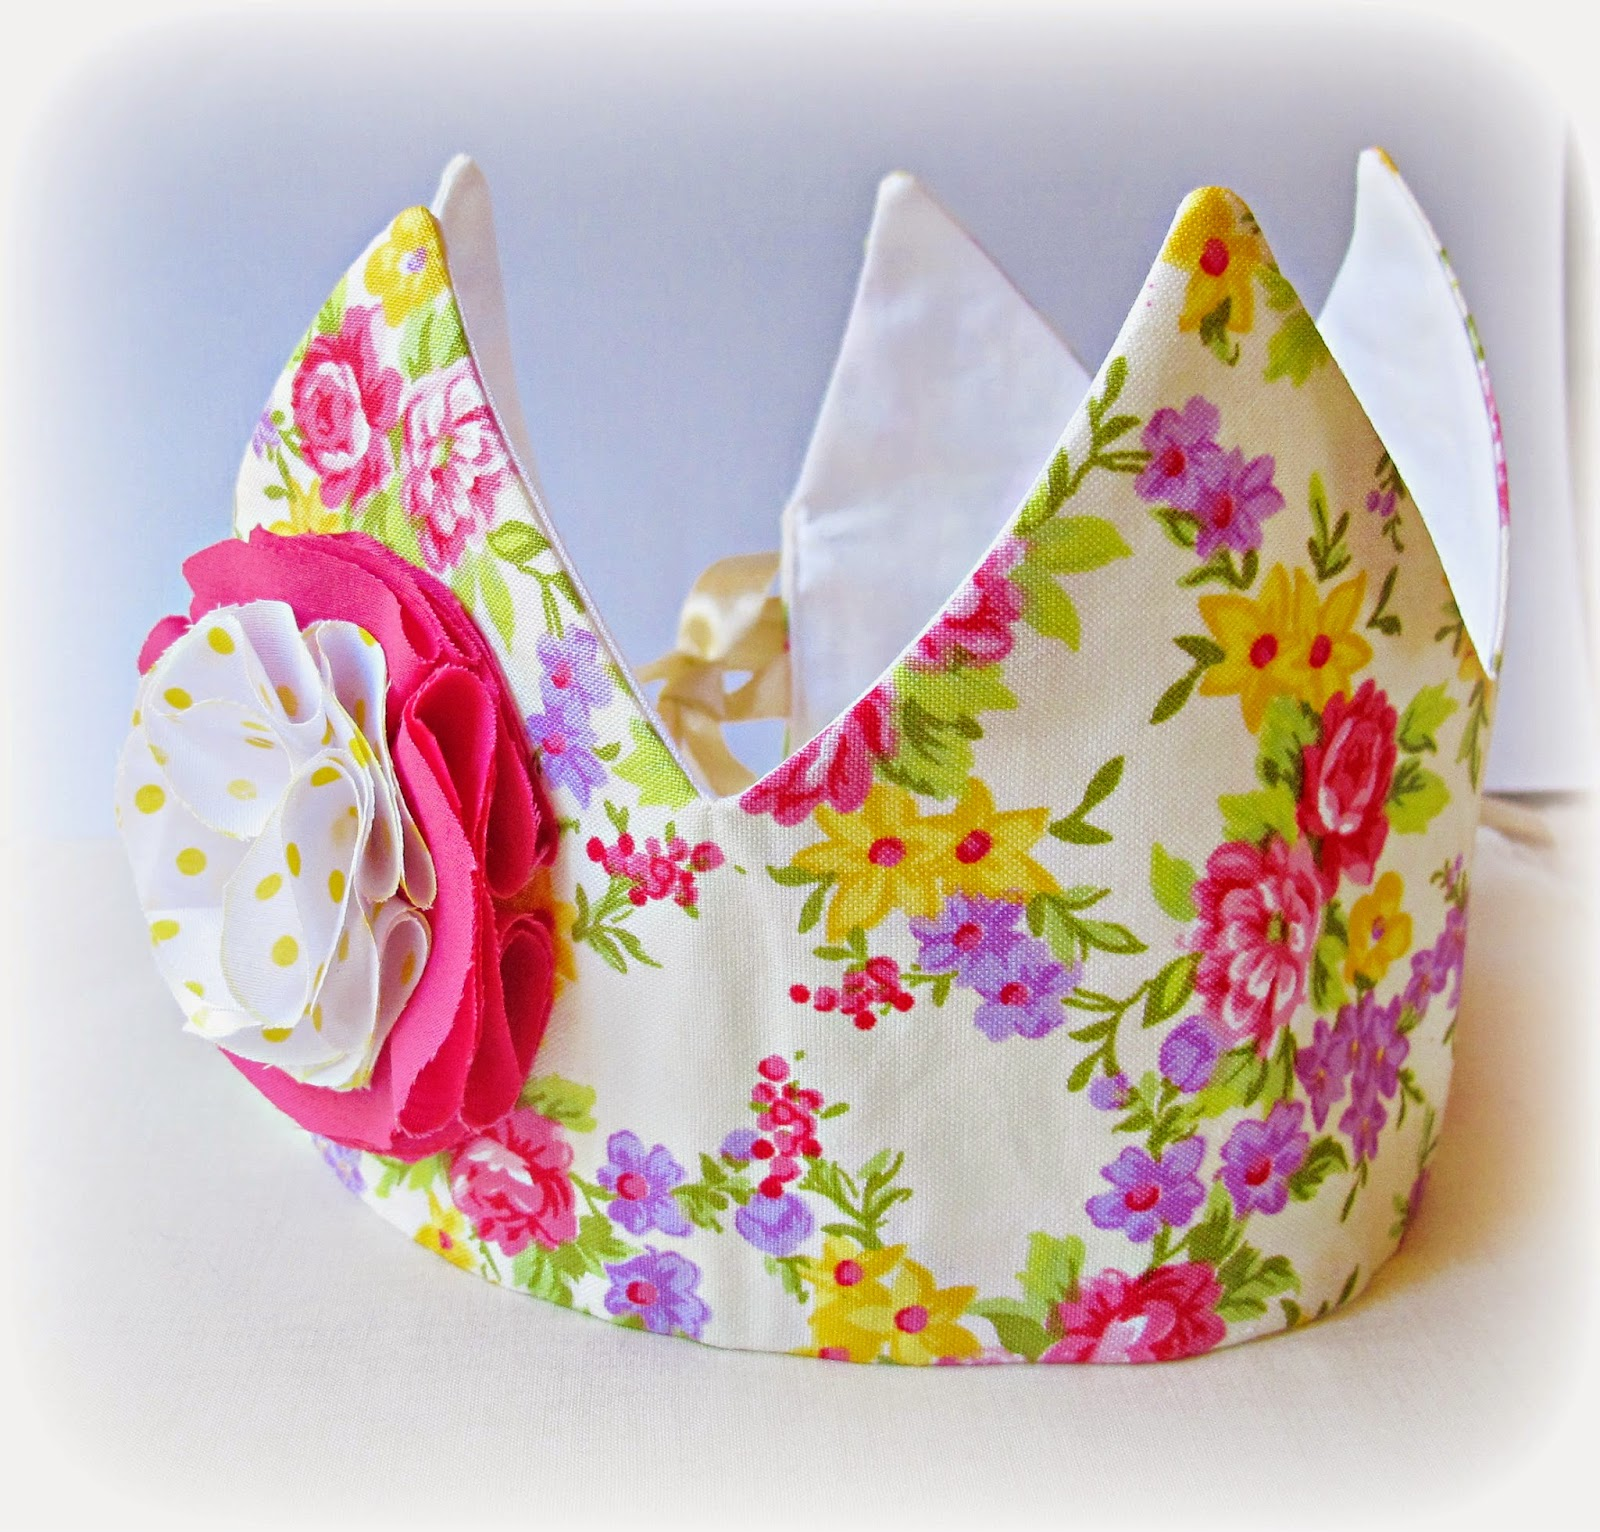 image fabric crown tutorial diy flower embellishment floral